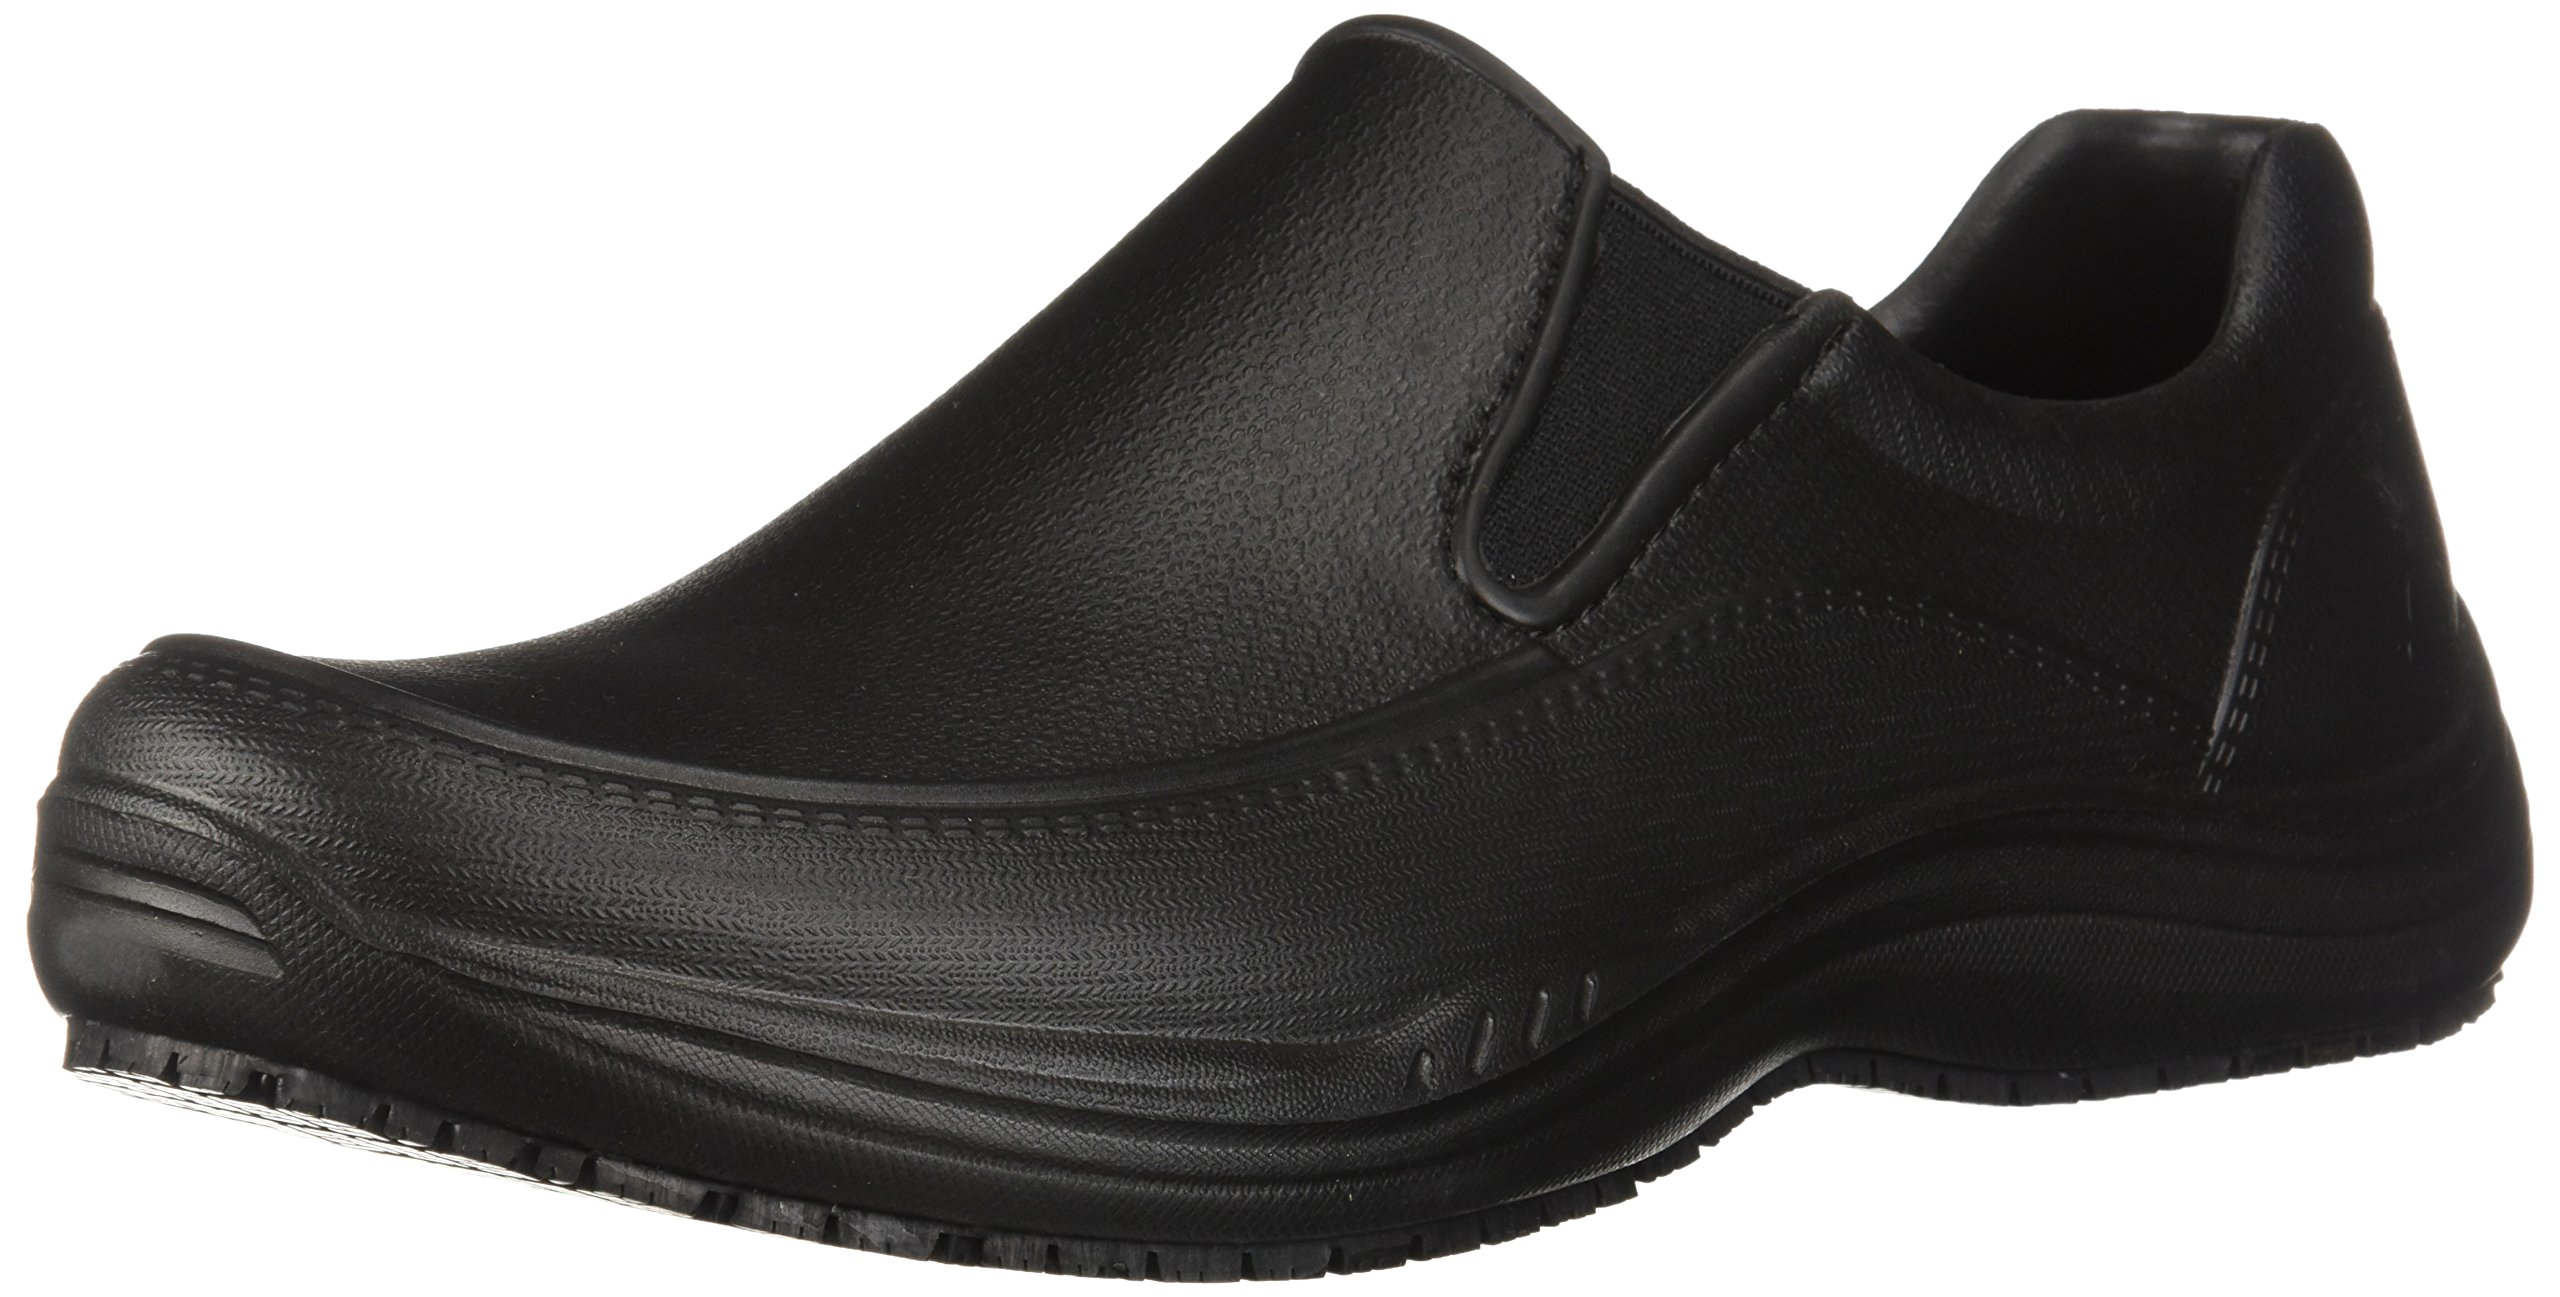 Skechers Men's Brushten Health Care Professional Shoe, Black Molded Eva, 14 M US